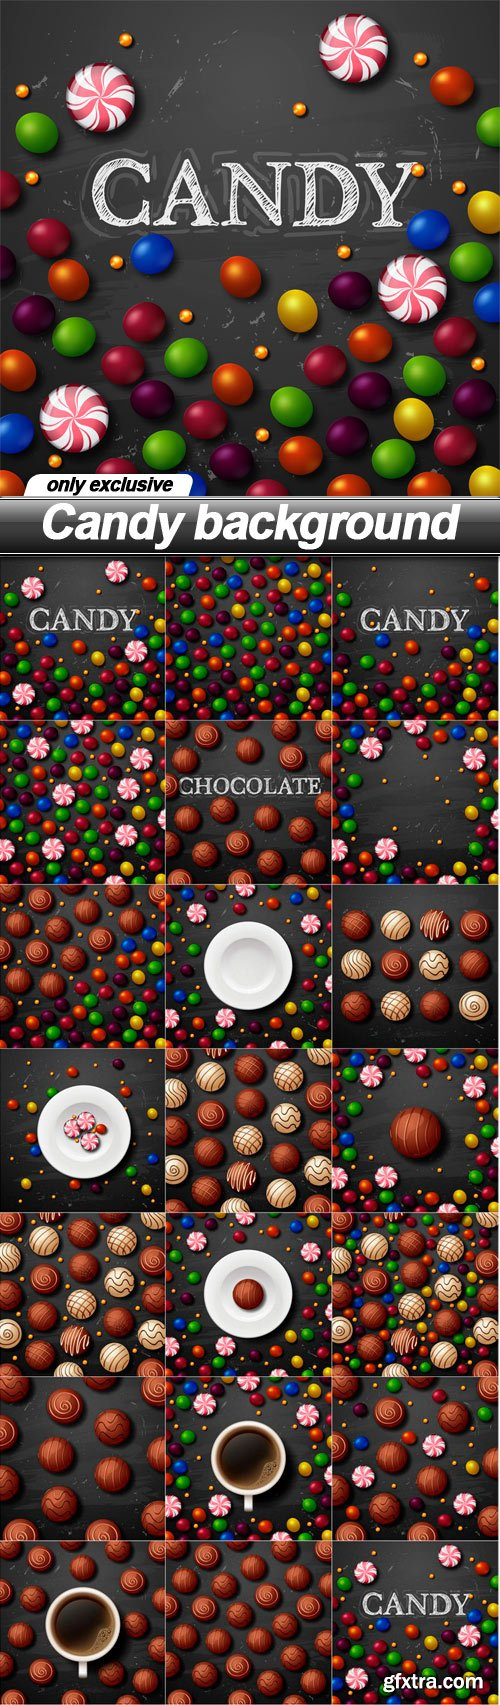 Candy background - 20 EPS